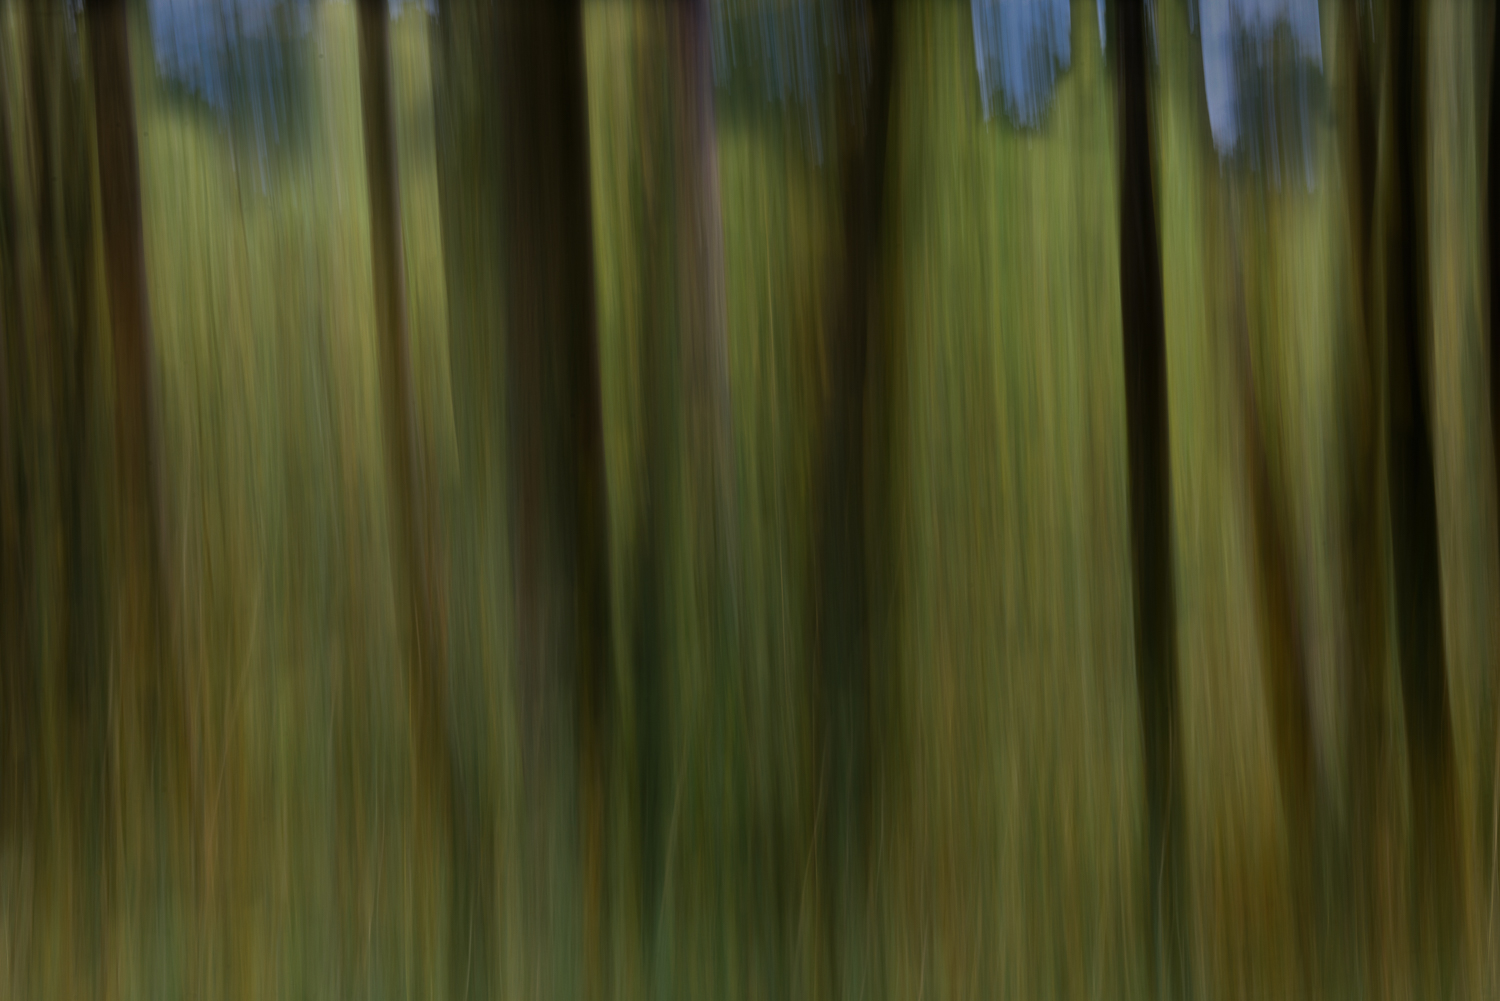 The Trees in the Woods